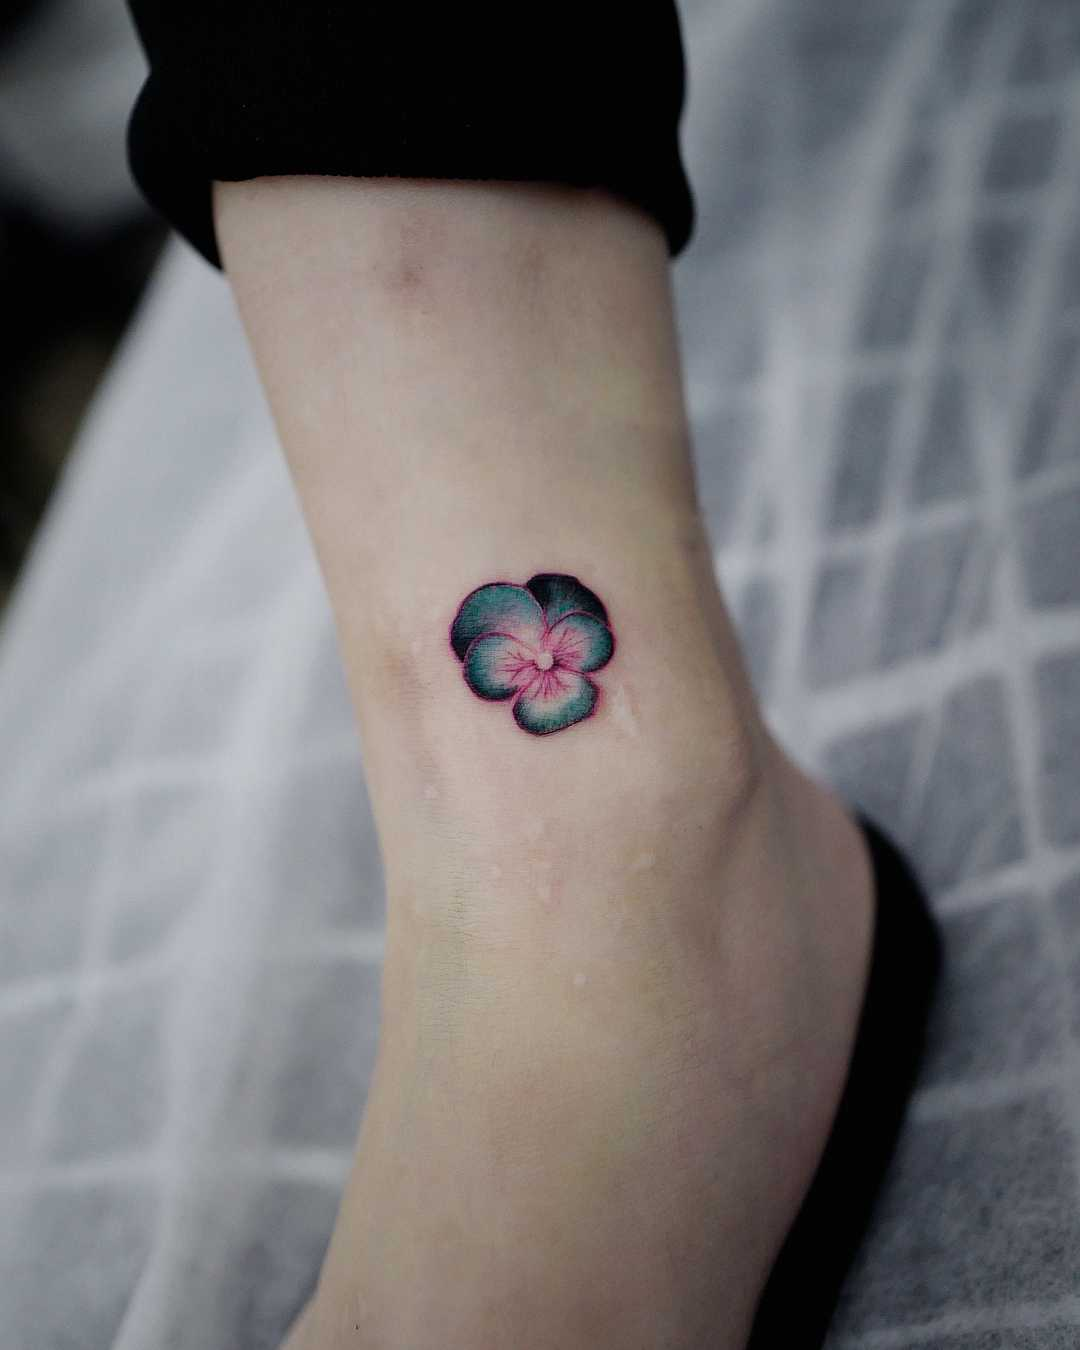 Pansy pendant tattoo by Studio Bysol